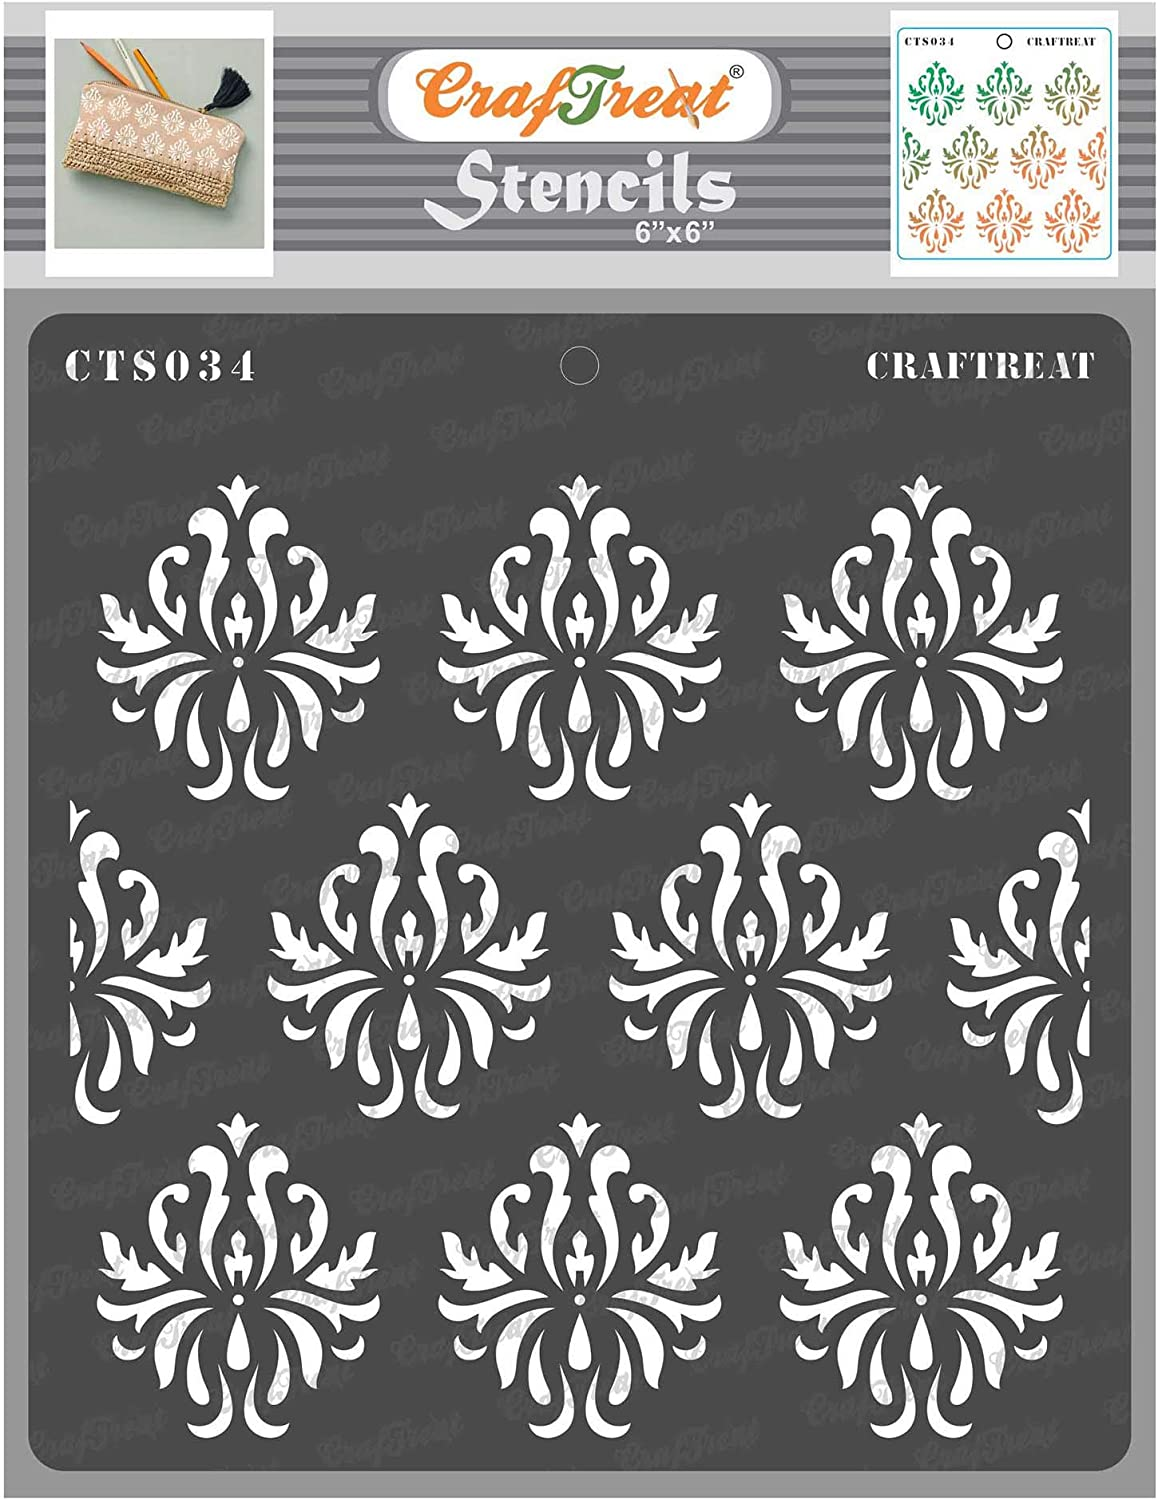 CrafTreat Damask Mandala Stencils for painting on Wood, Canvas, Paper, Fabric, Floor, Wall and Tile - Damask Background - 6x6 Inches - Reusable DIY Art and Craft Stencils - Damask Stencils